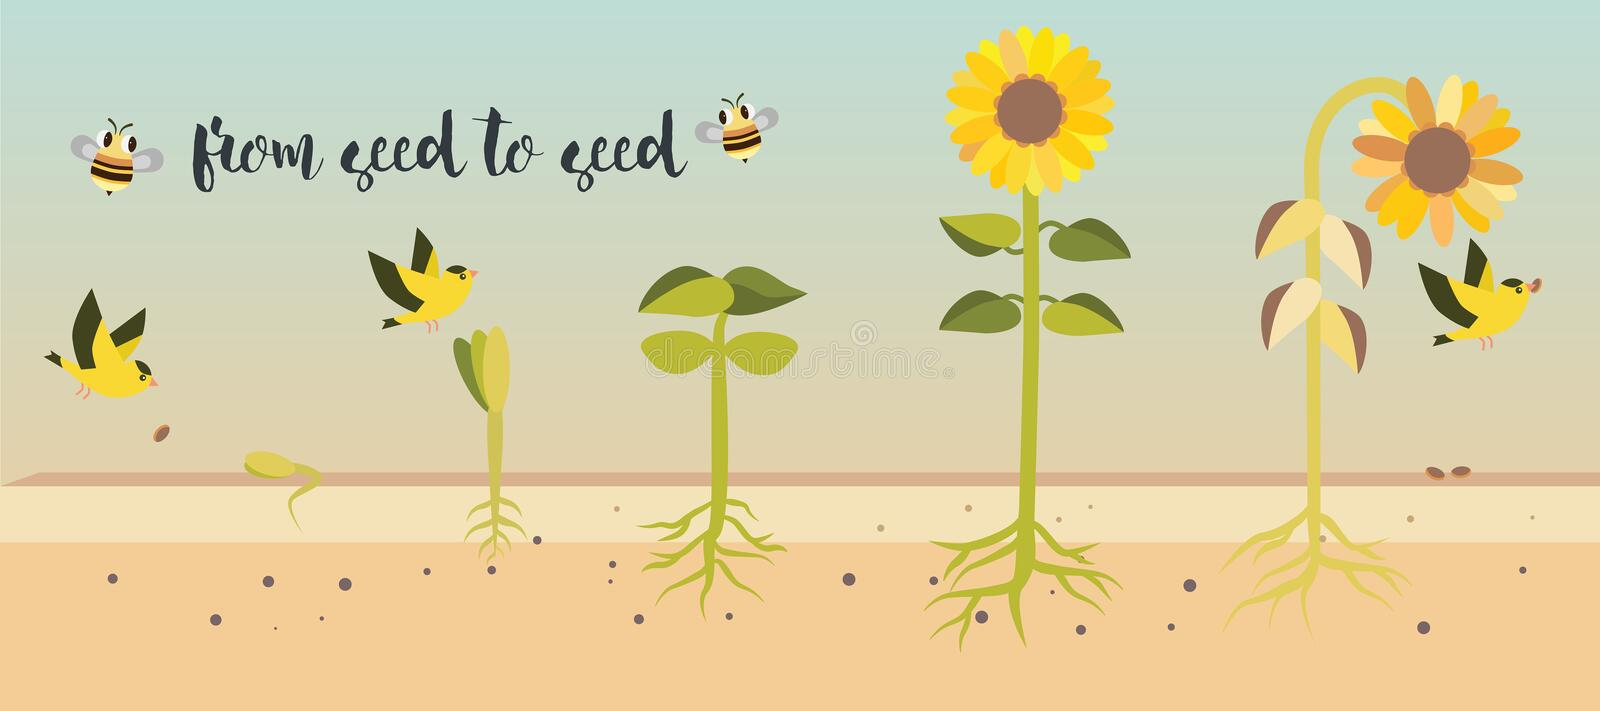 From seed to seed plant growth proccess stock illustration